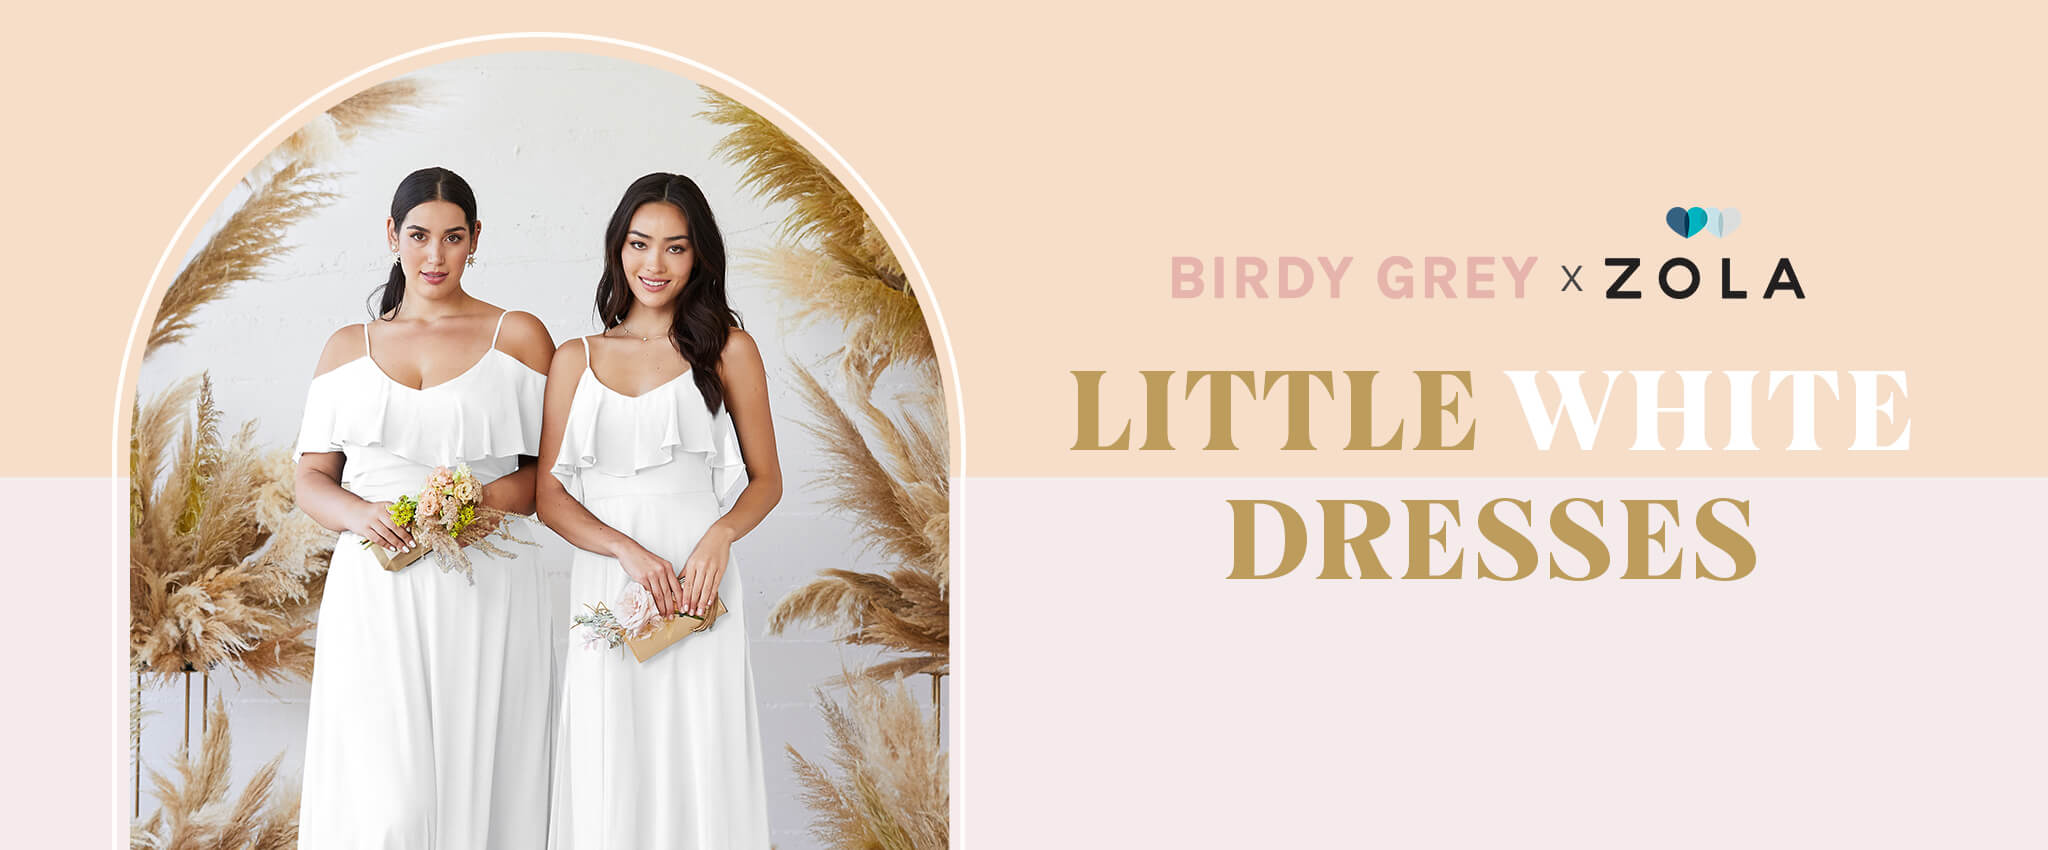 Introducing LITTLE WHITE DRESSES by Birdy Grey x ZOLA